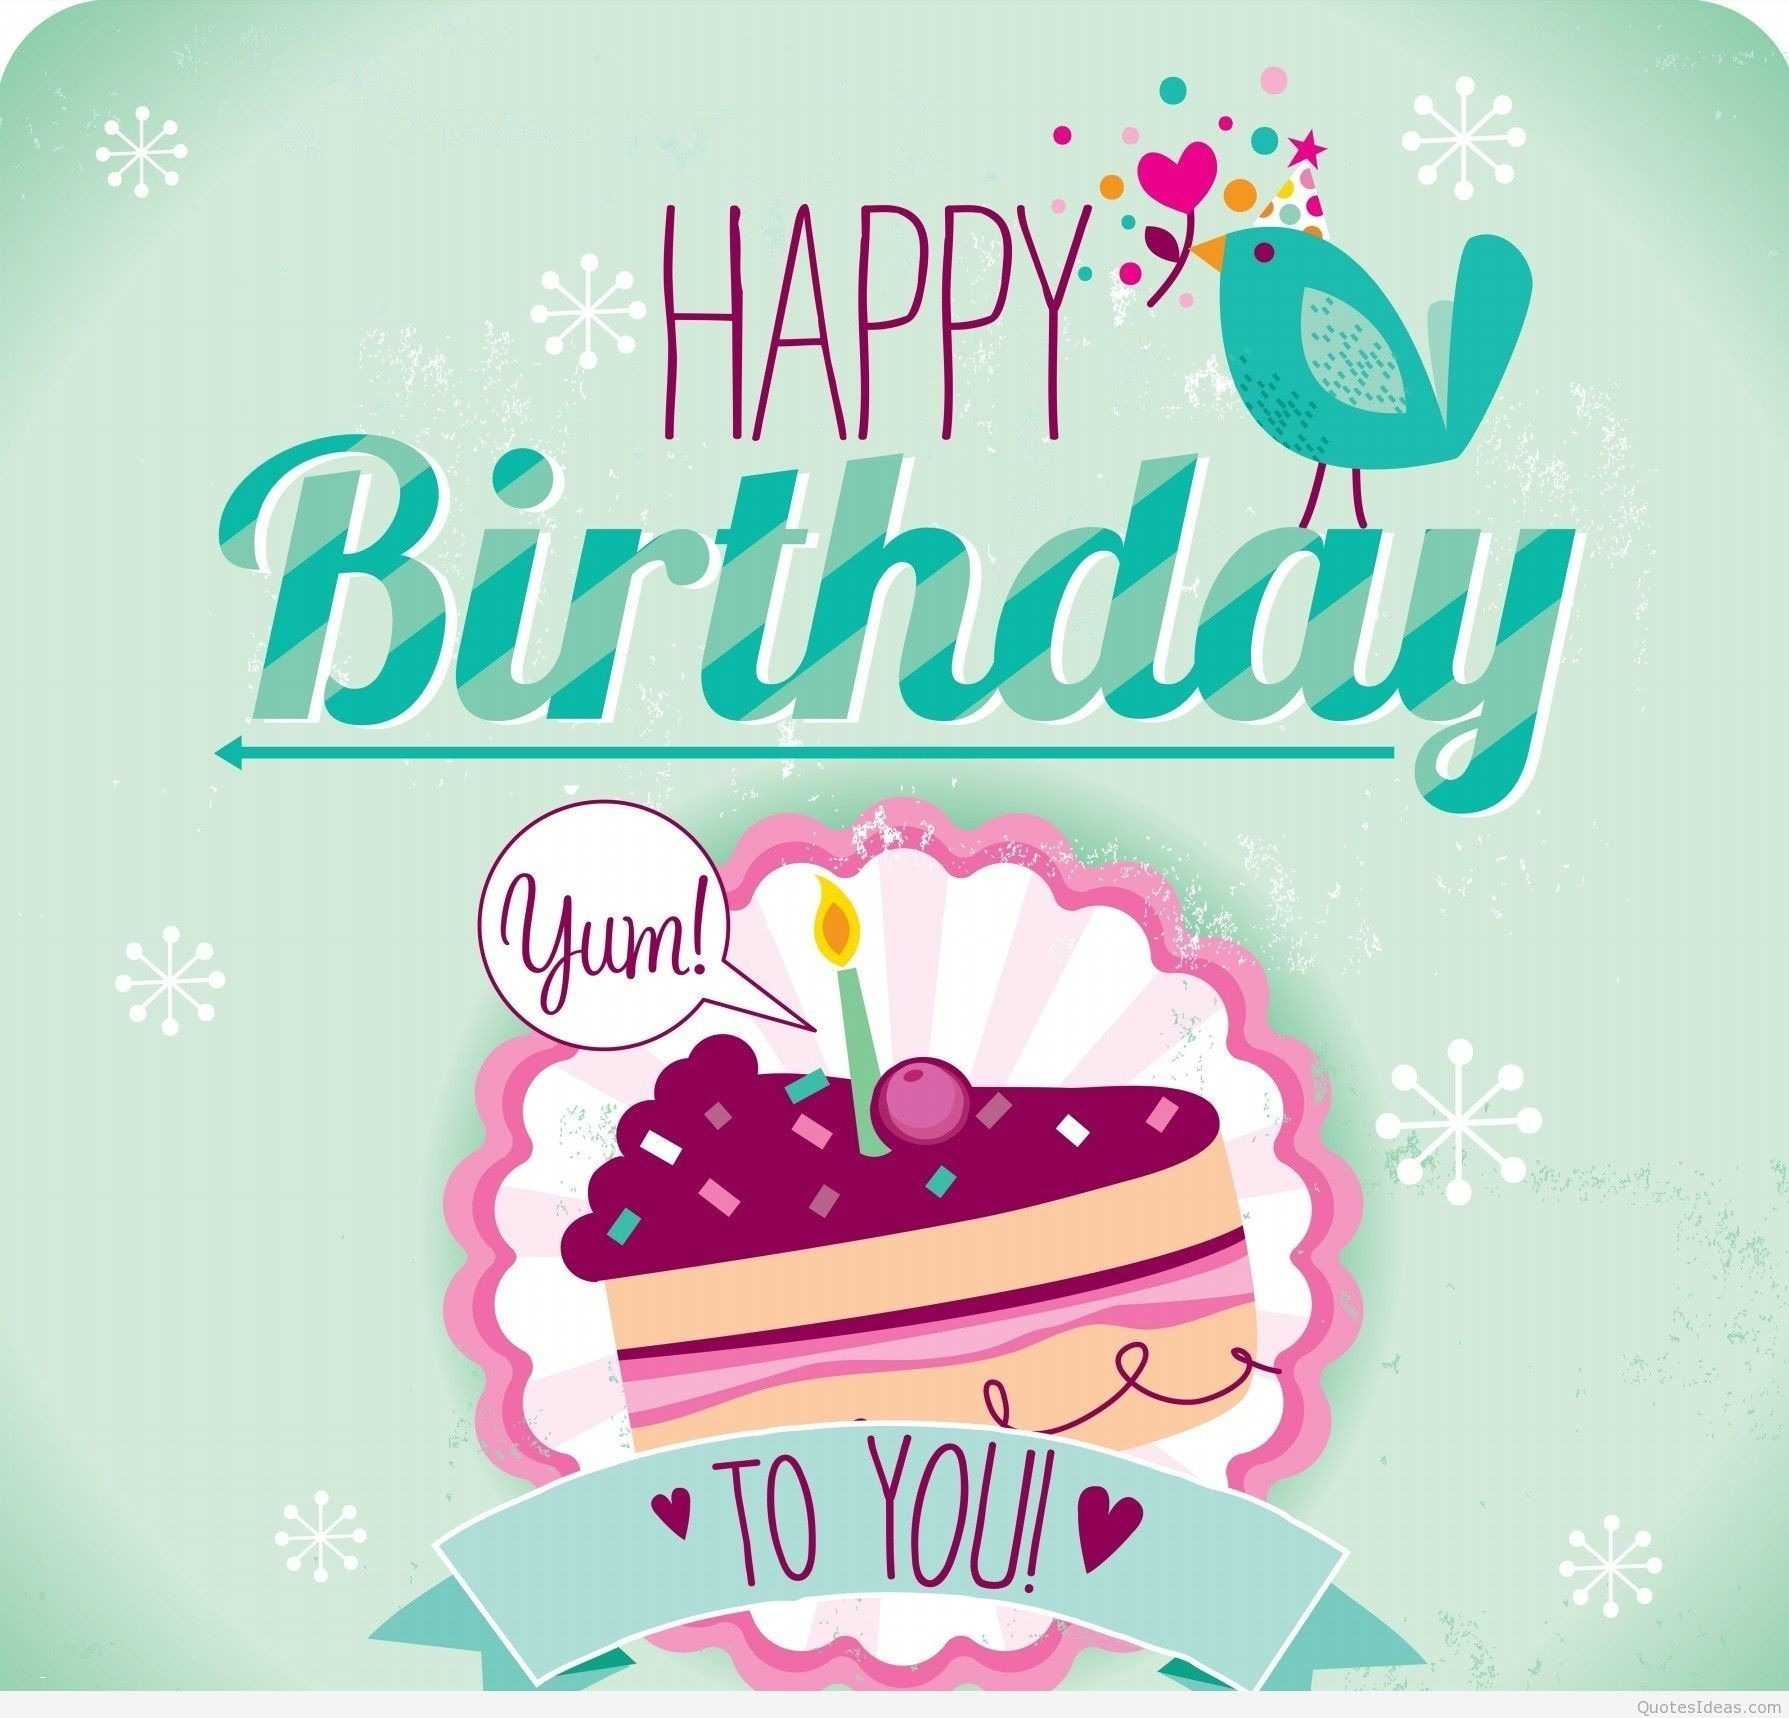 birthday card email templates free ; greeting-cards-email-lovely-e-greeting-cards-best-birthday-card-email-template-new-free-of-greeting-cards-email